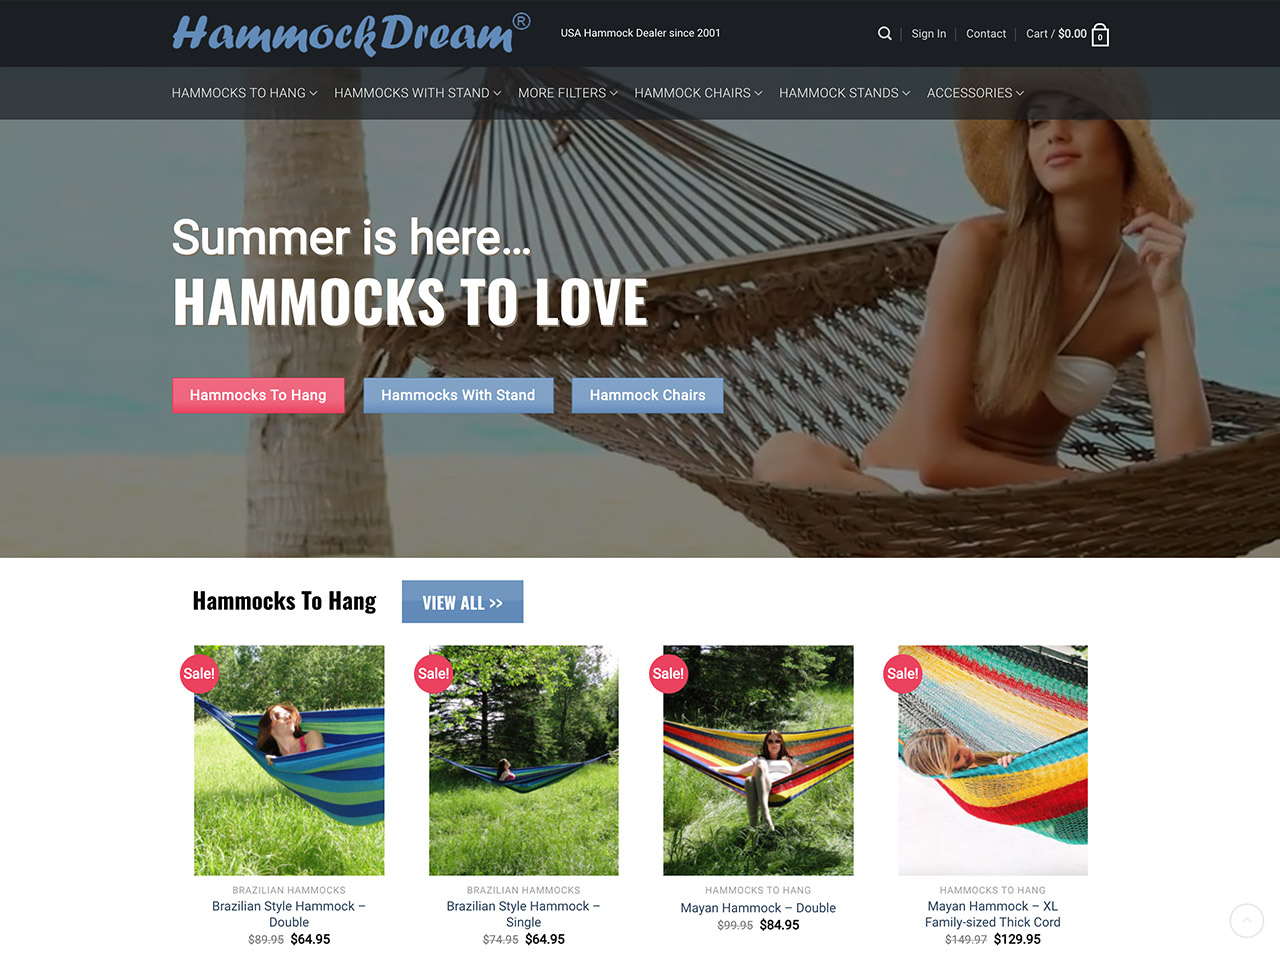 chair hammock for with hammocks styles cozy single outdoor brazilian hanging fabric brazil captivating decoration stand ideas decorating woven style